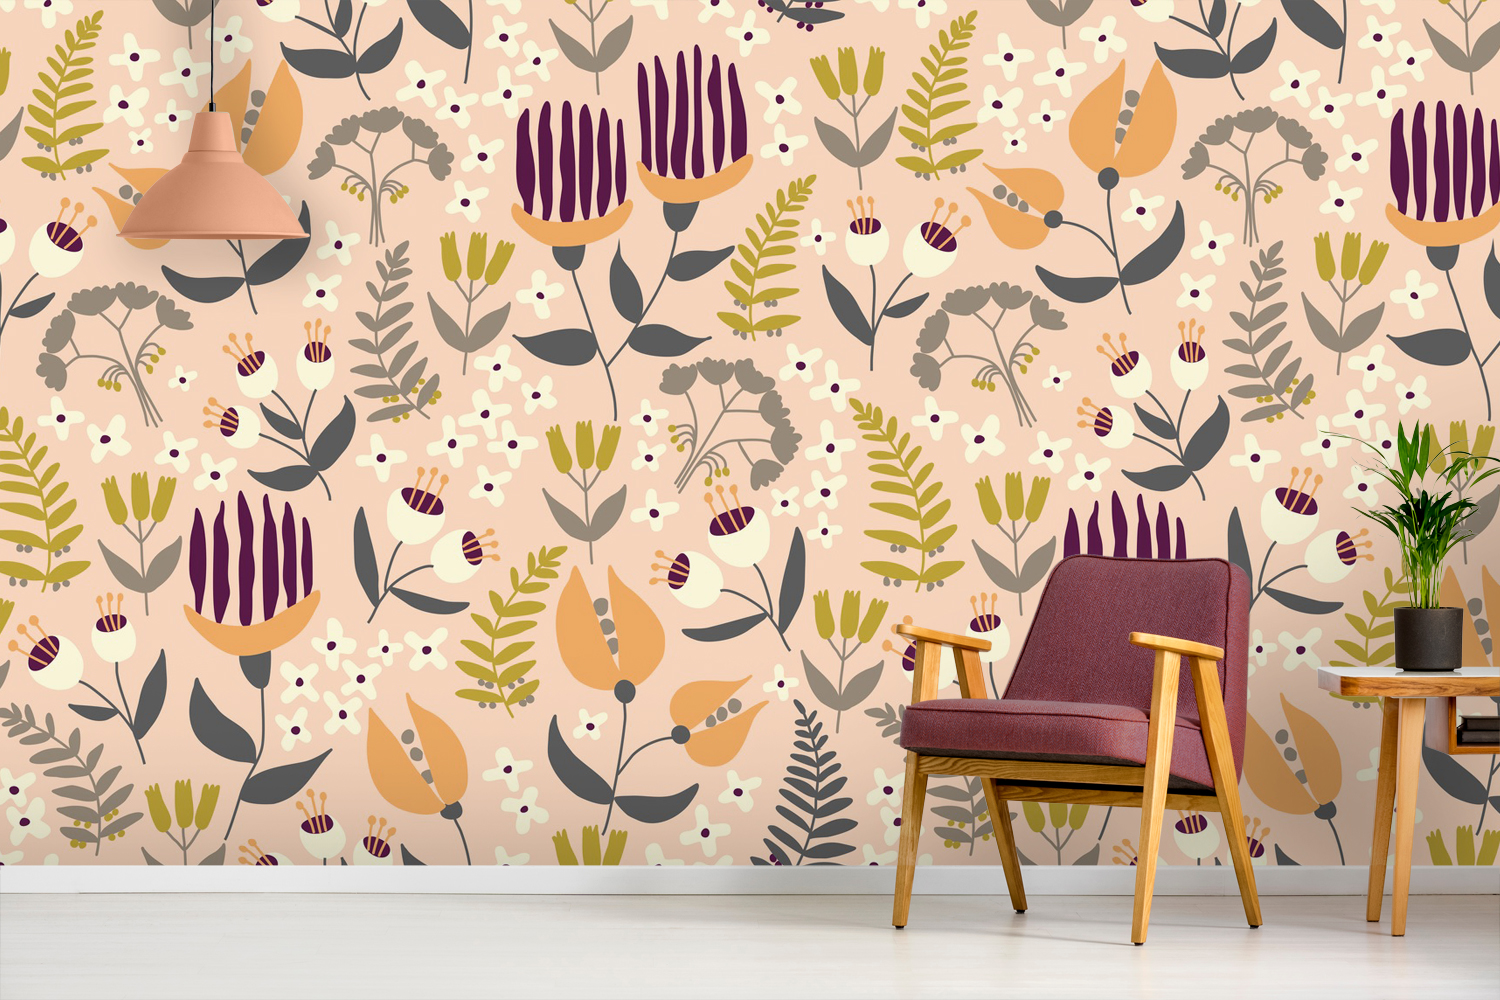 'Organic Interweaving' Wallpaper Mural by The Tiny Garden at Wallsauce.com